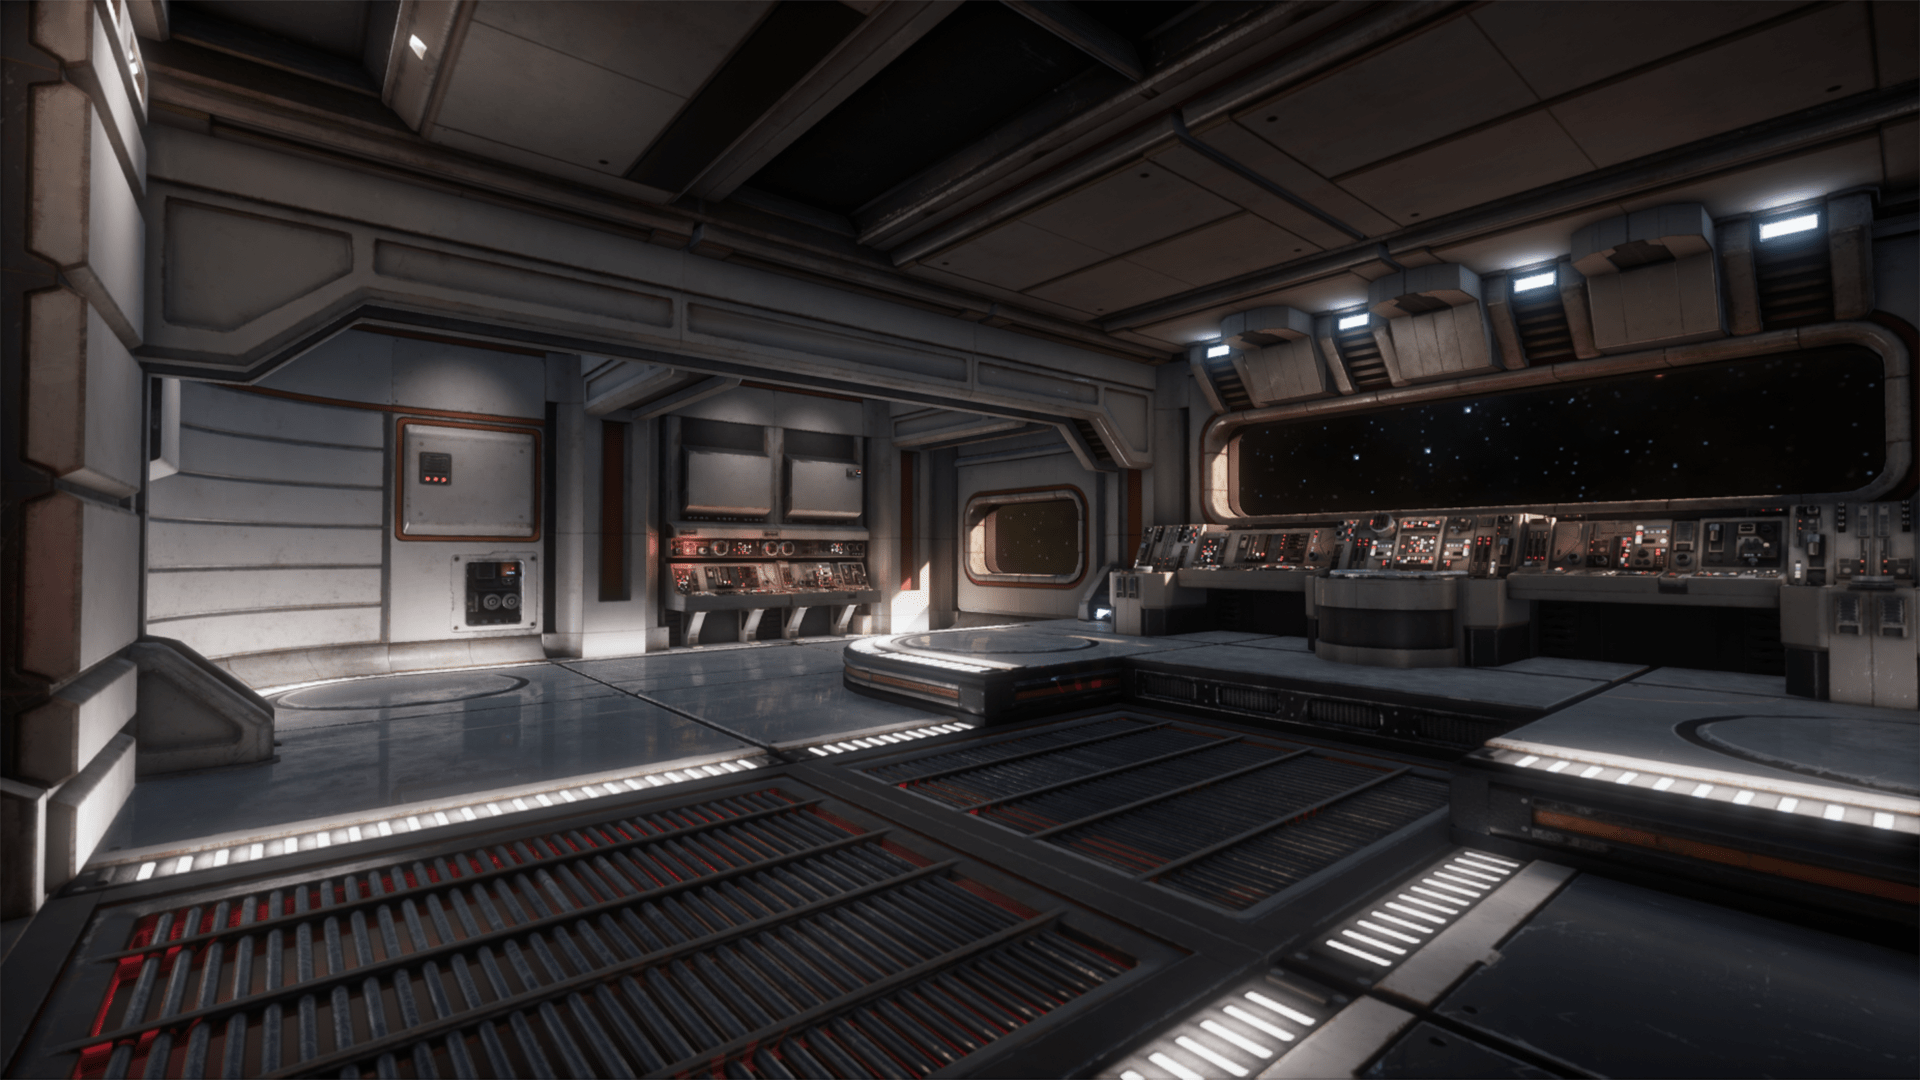 Sci Fi Interior Asset Pack 1 by RickKnox in Environments - UE4